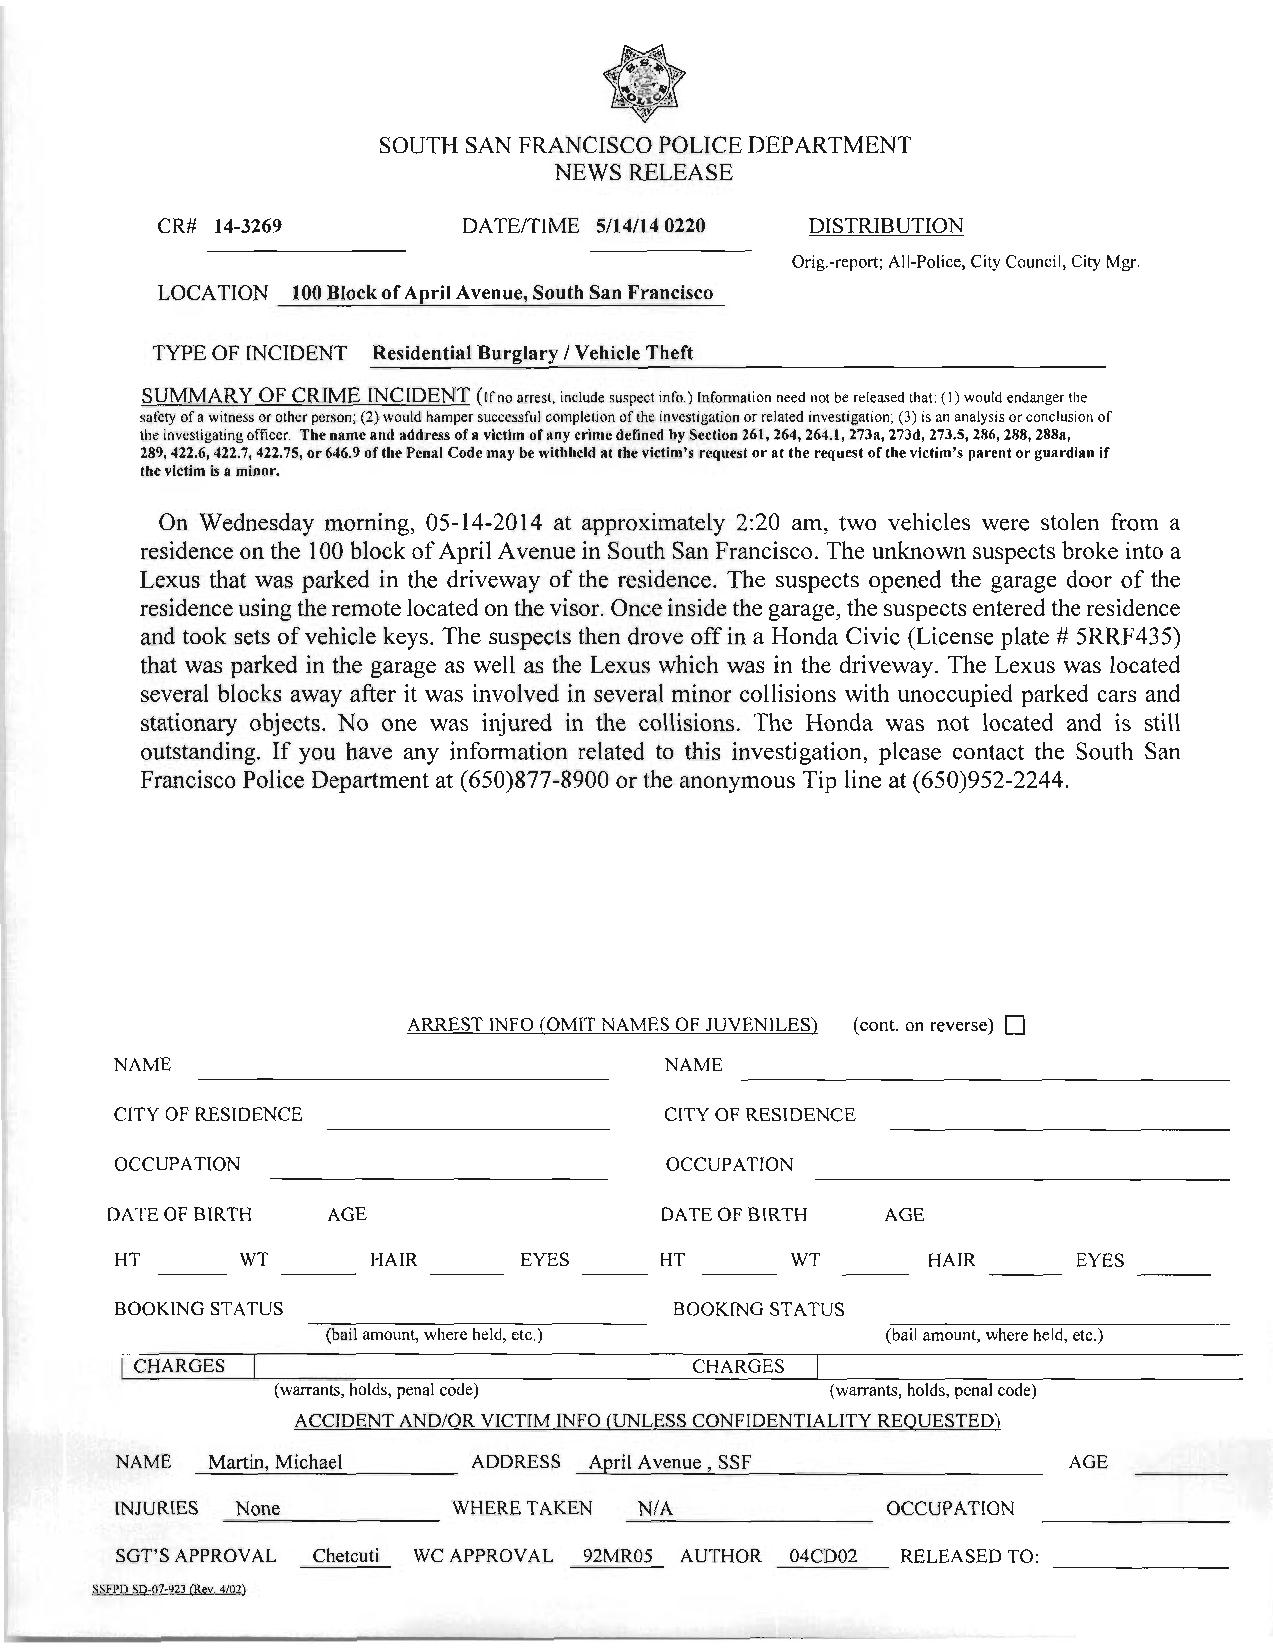 5.15.14 Res Burg & Vehicle Theft-page-001